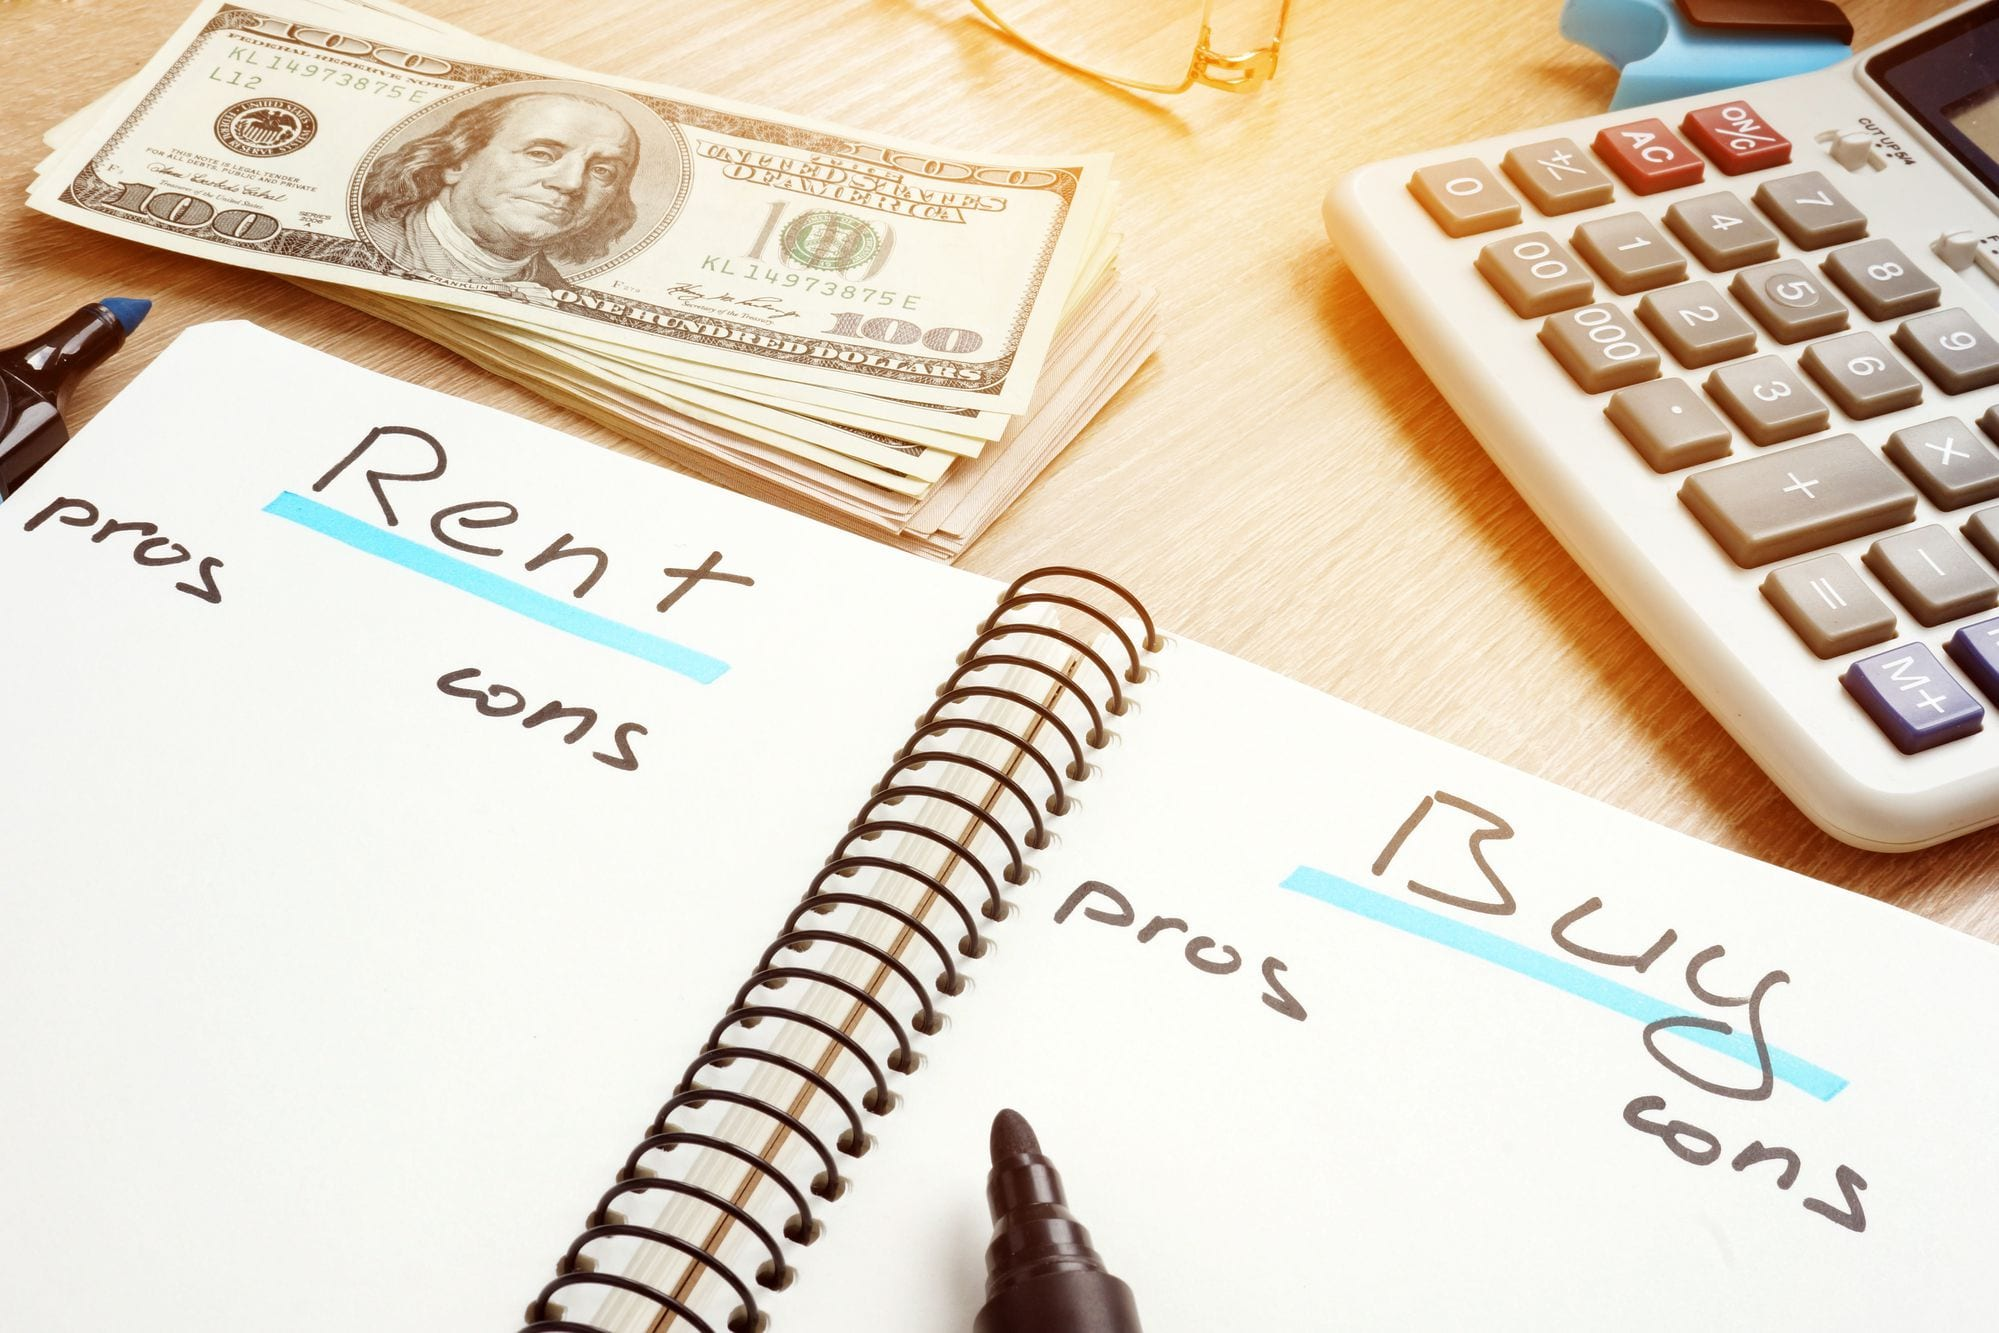 Rent Vs. Own: Why Owning a Home is the Better Option